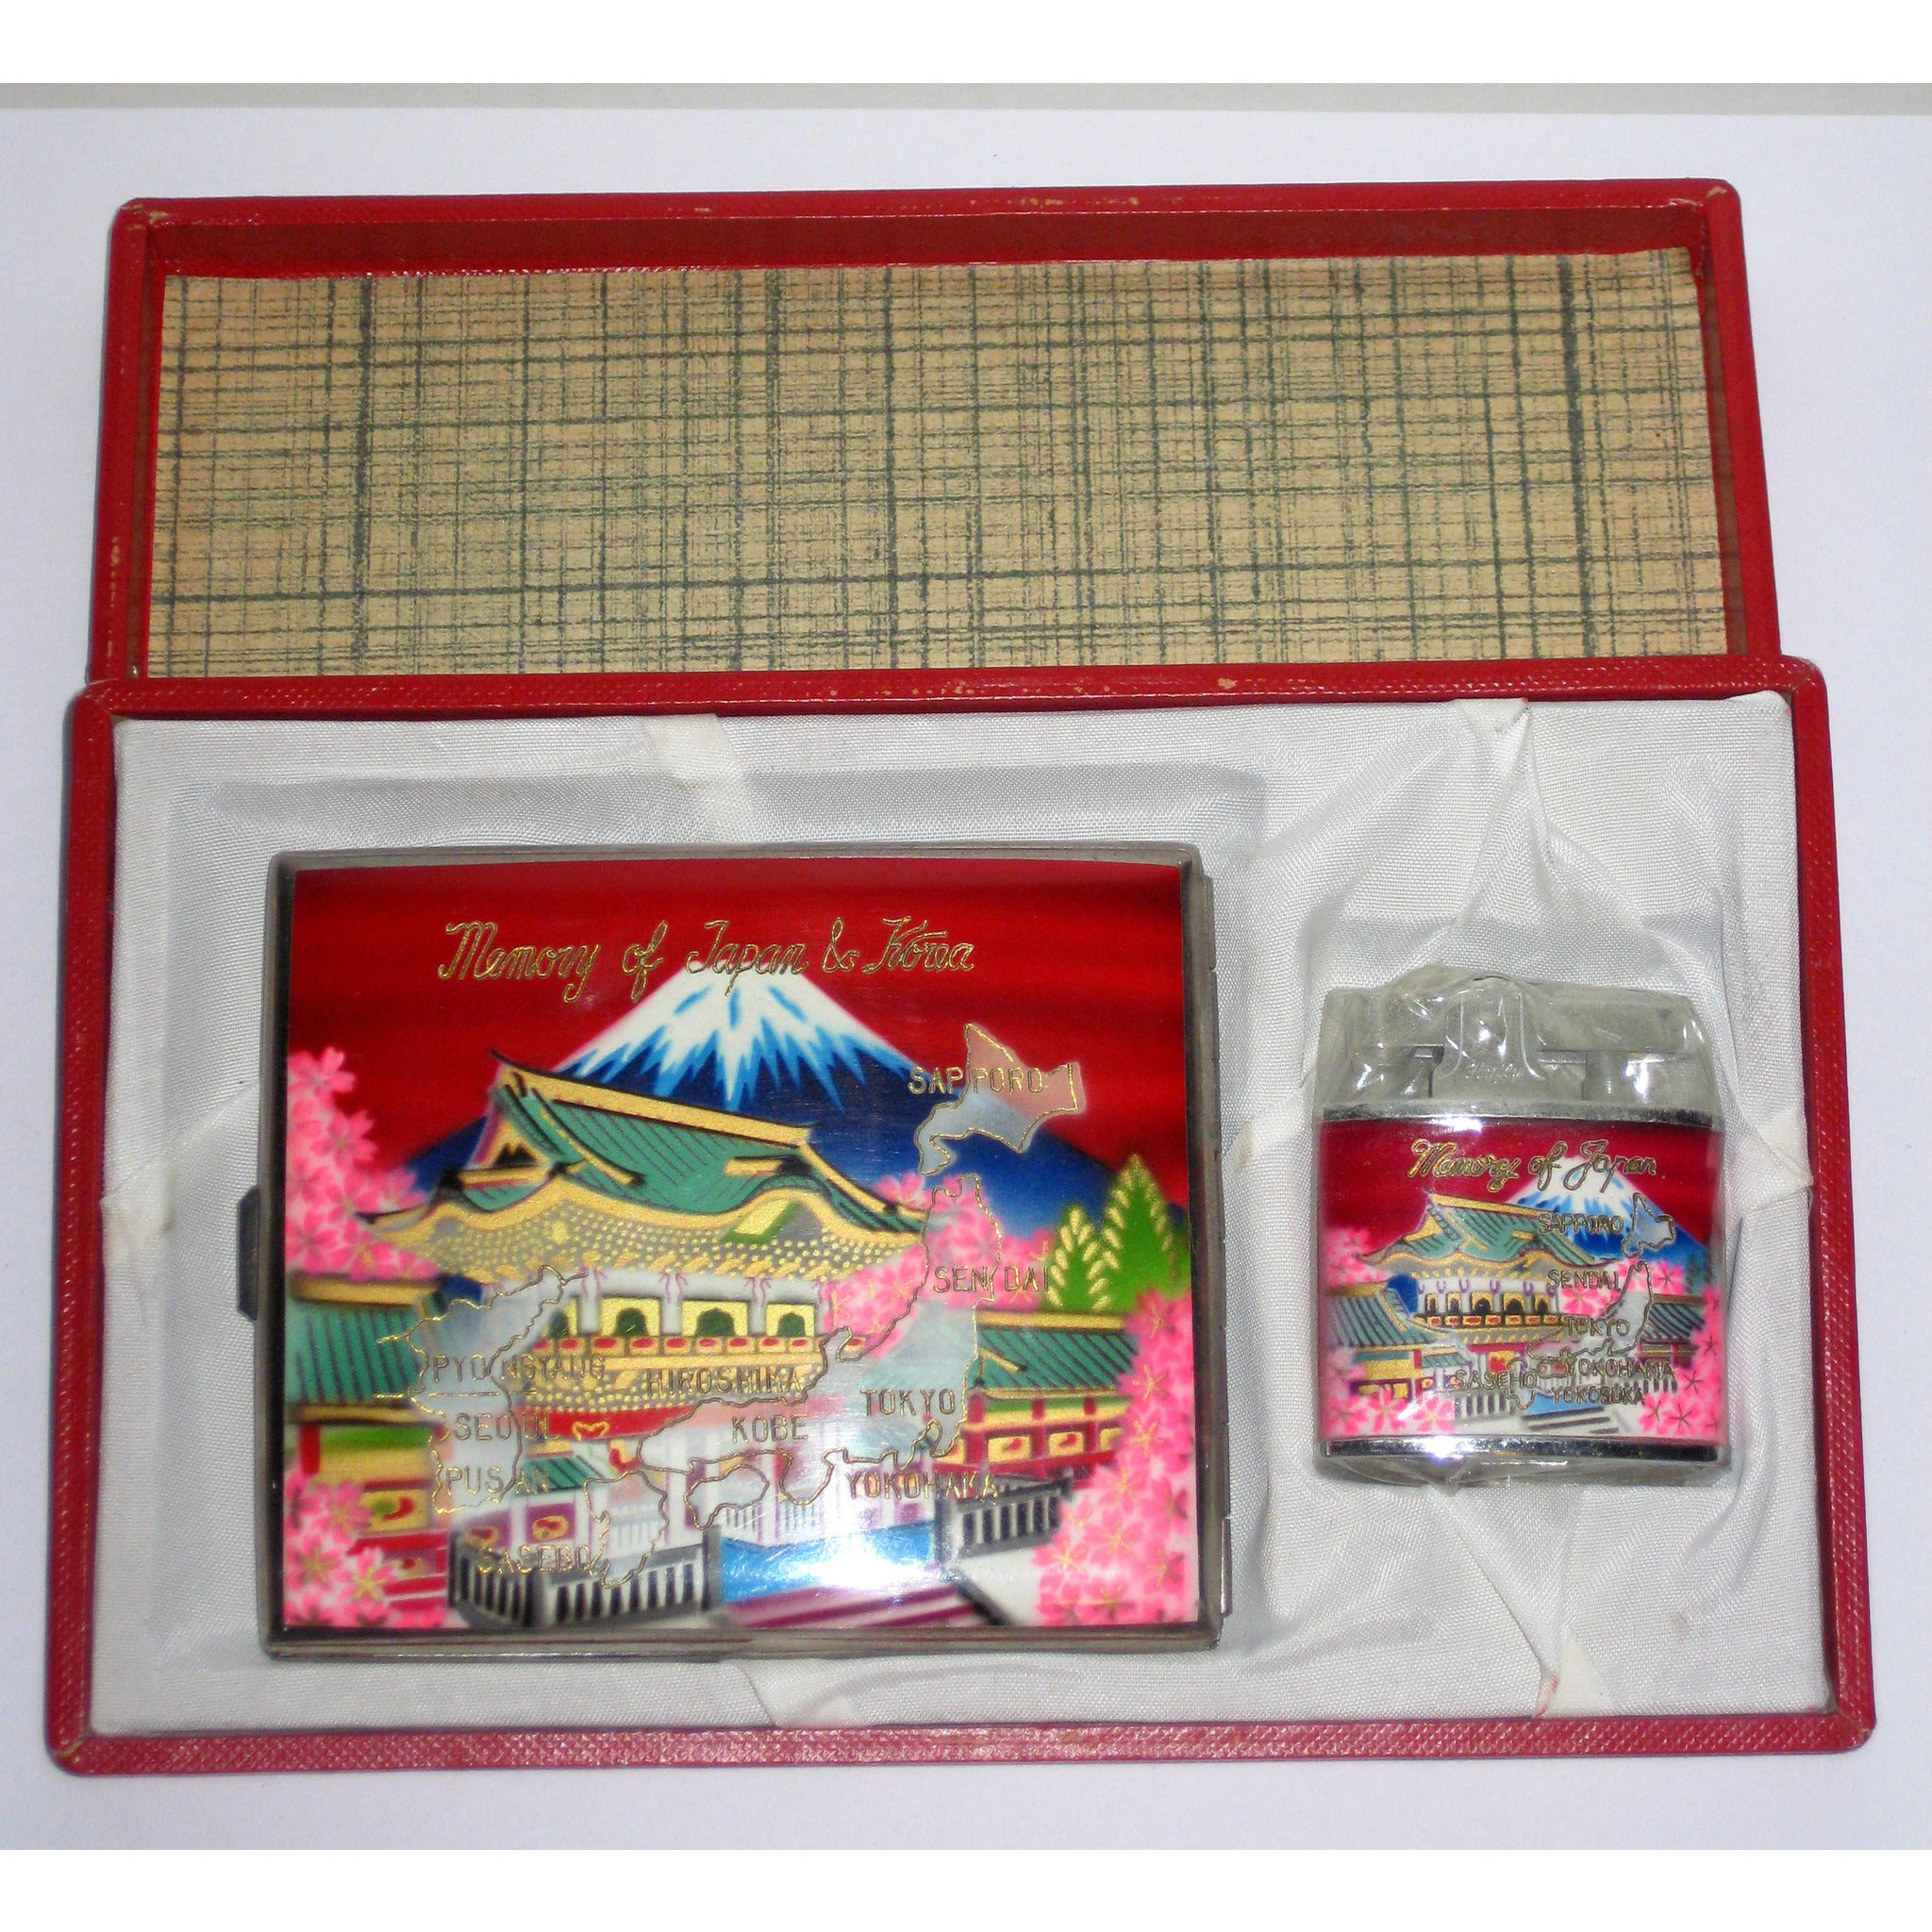 Vintage Memory Of Japan & Korea Cigarette Set